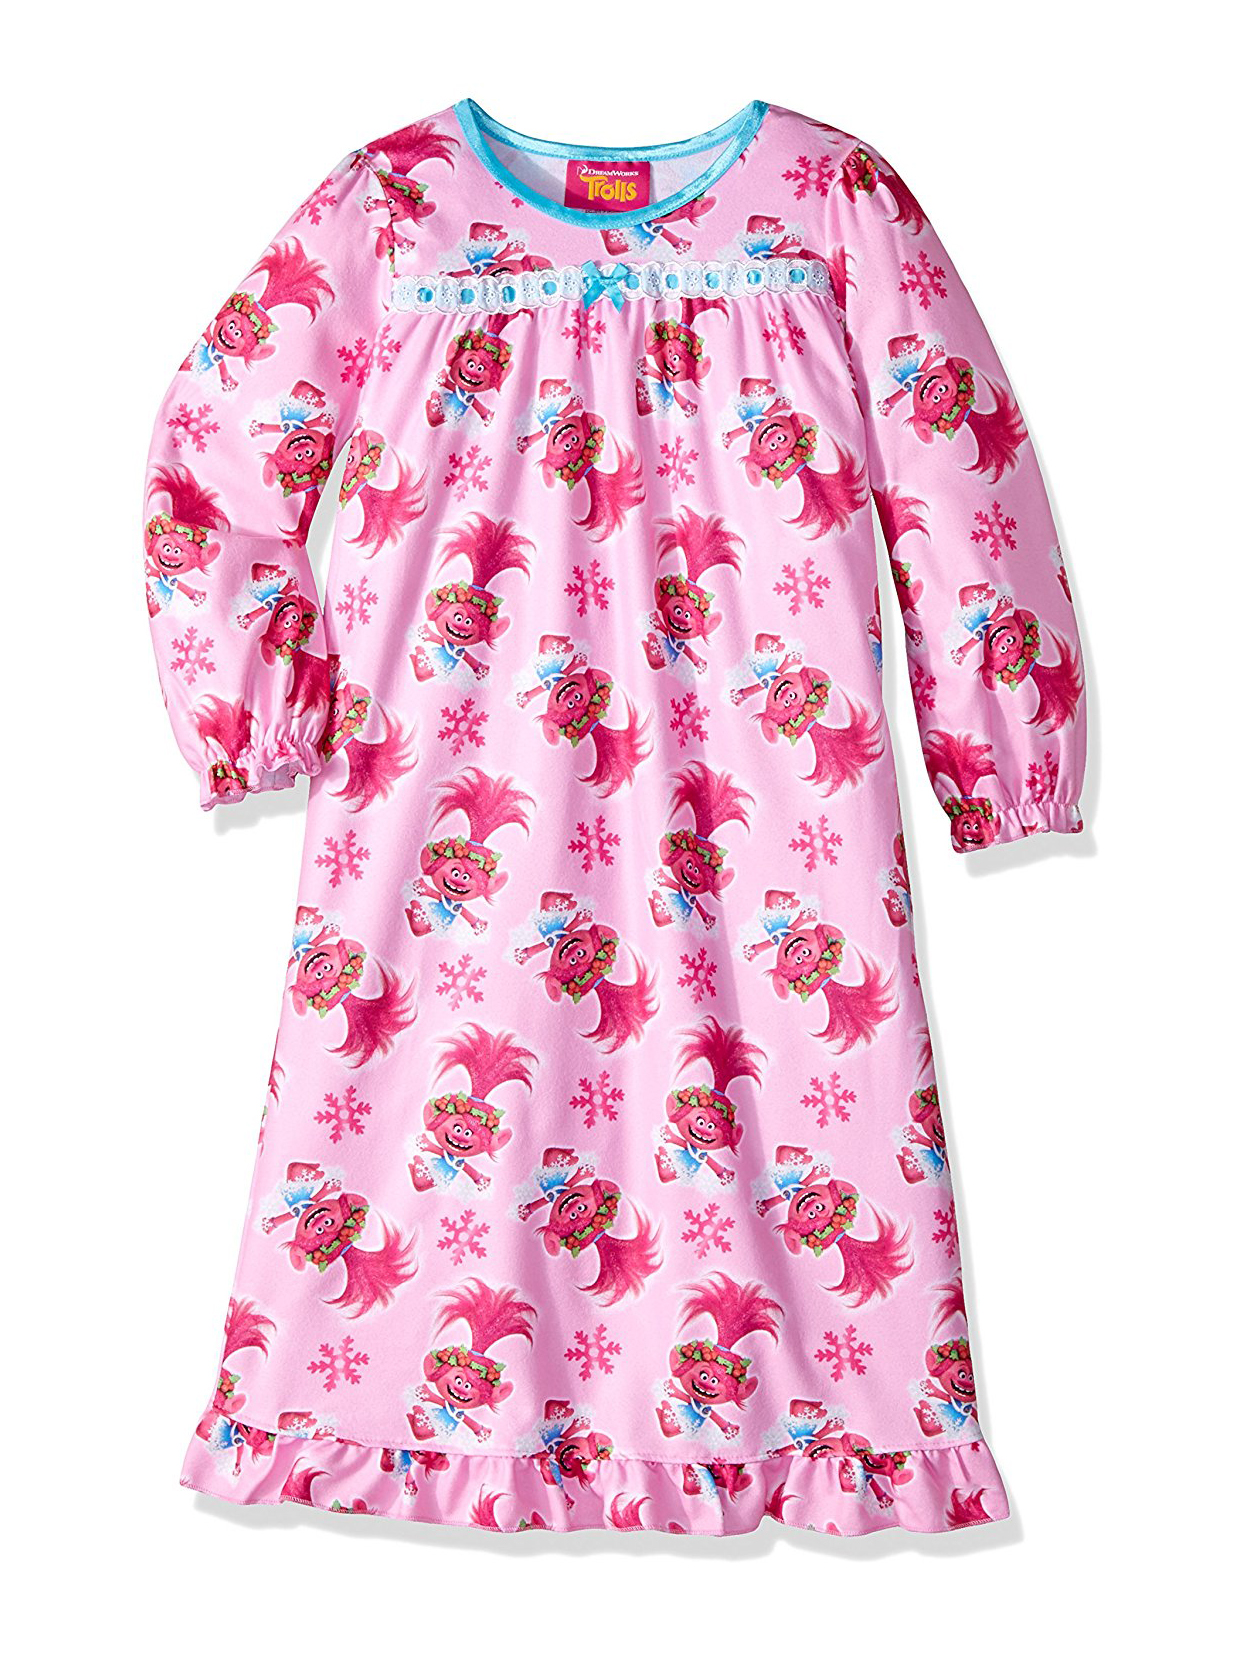 Trolls Toddler Girls Flannel Granny Gown Nightgown 21TP116TGL